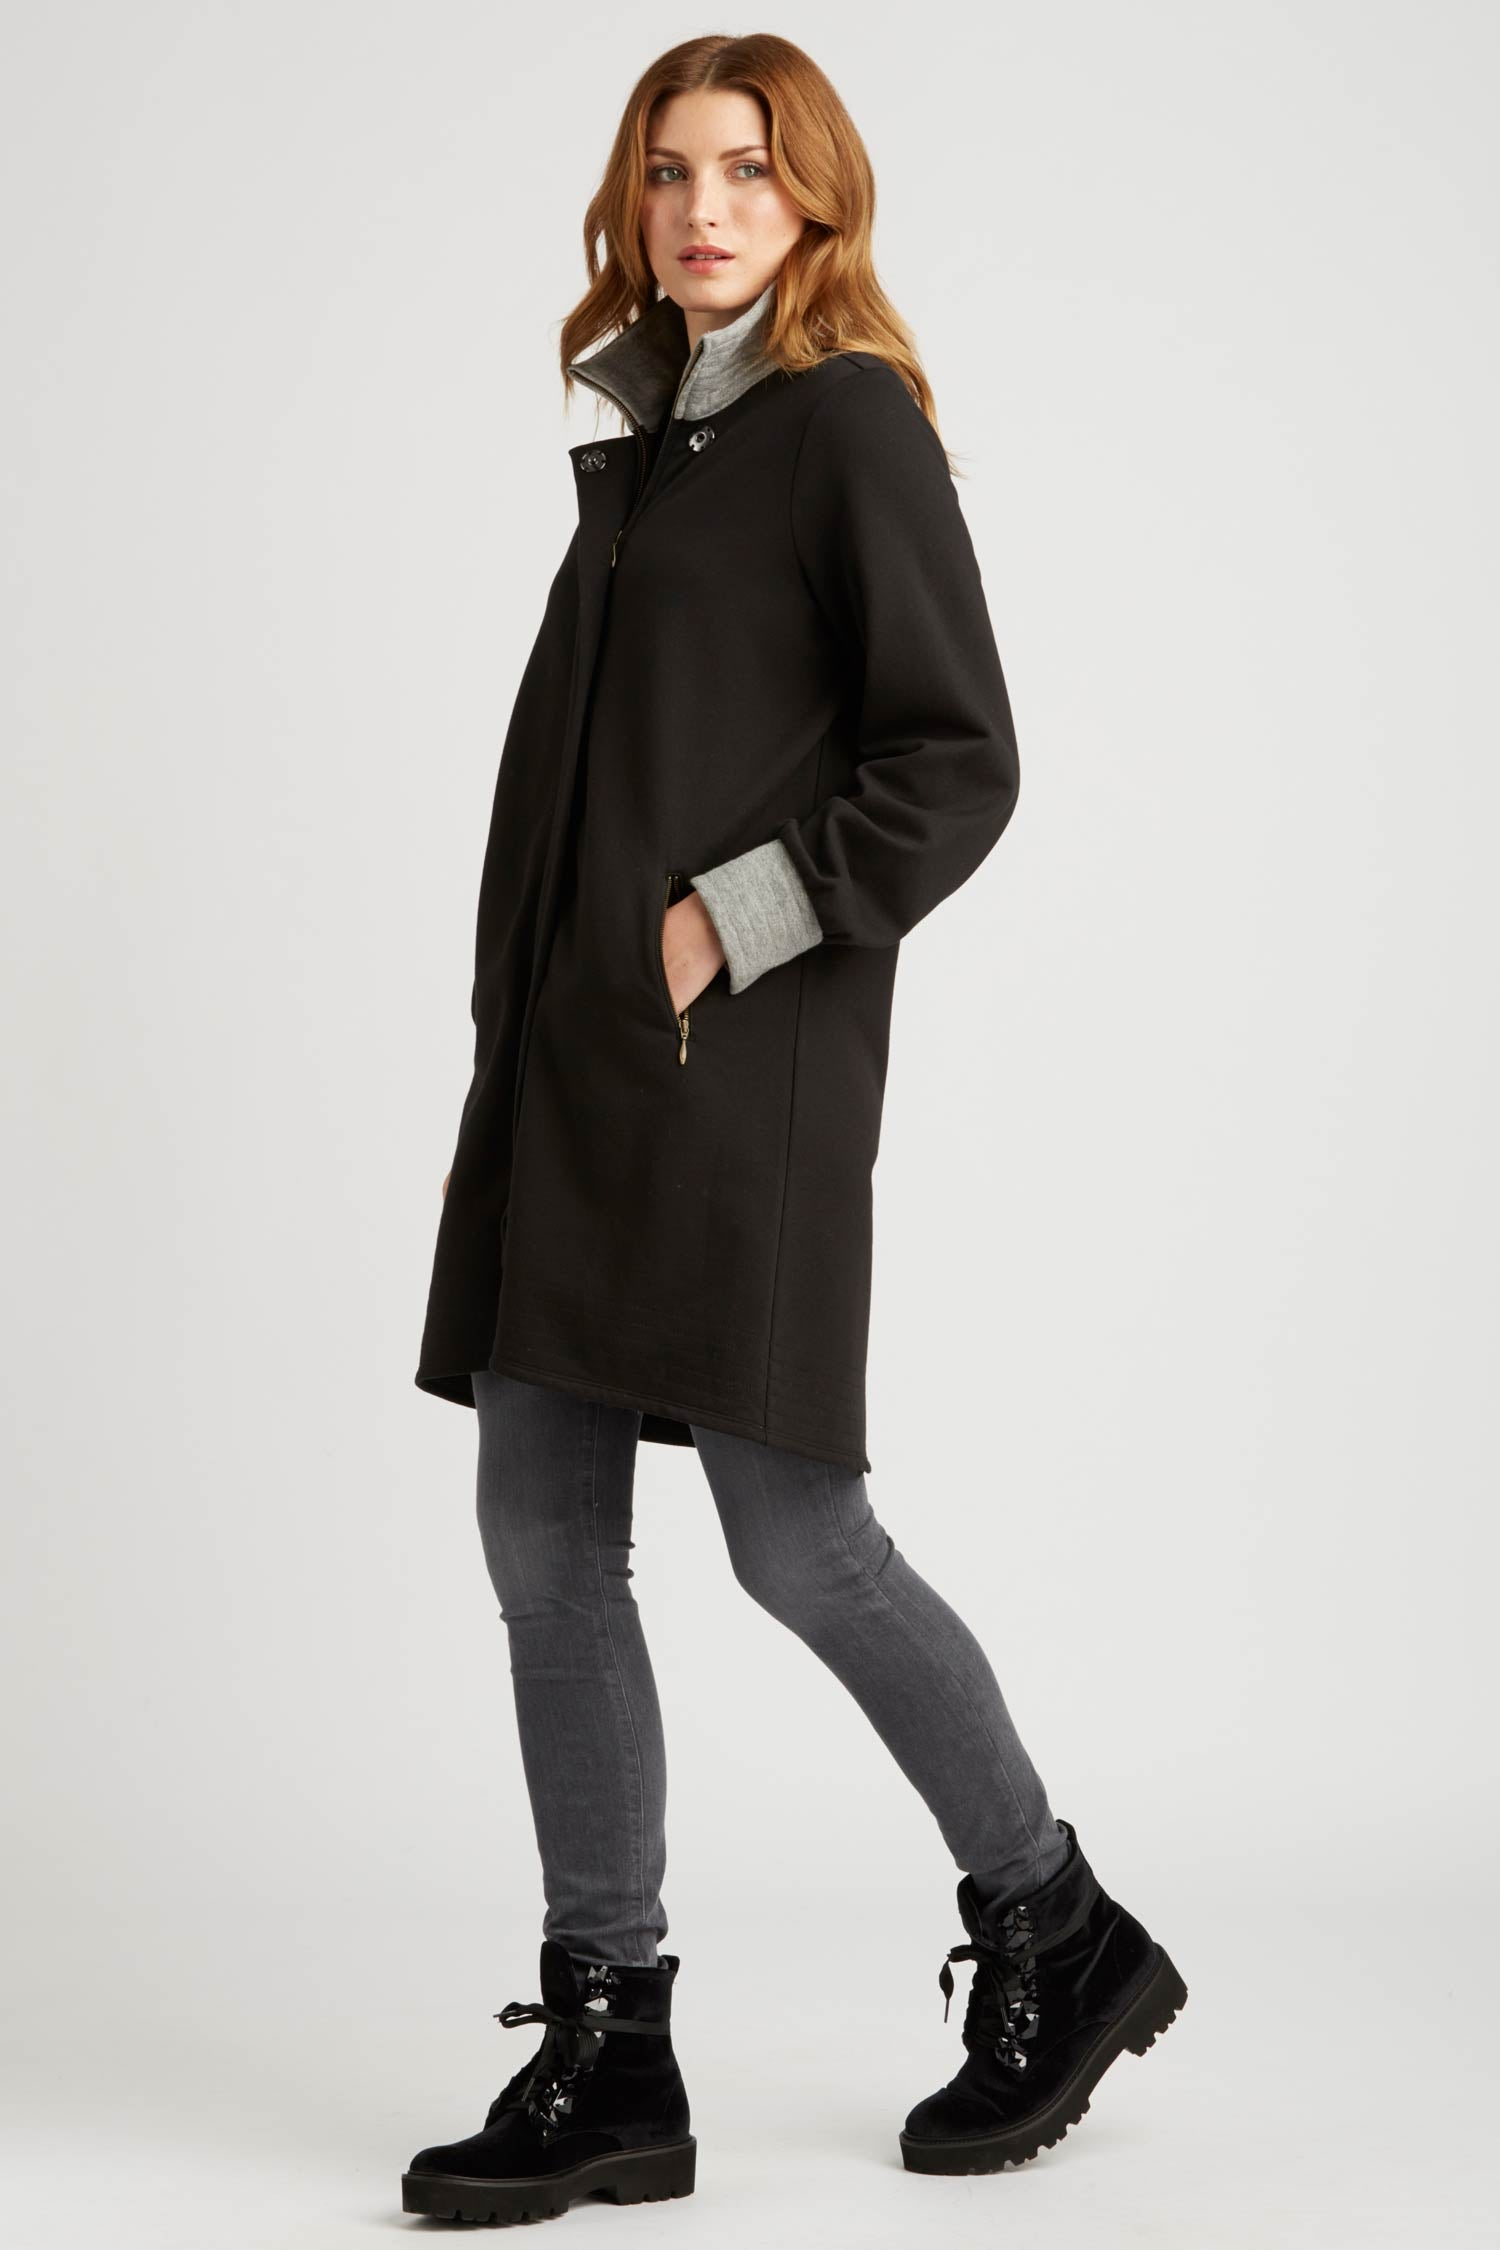 Womens Fleece Bomber Coat | Black | Organic Cotton Clothing